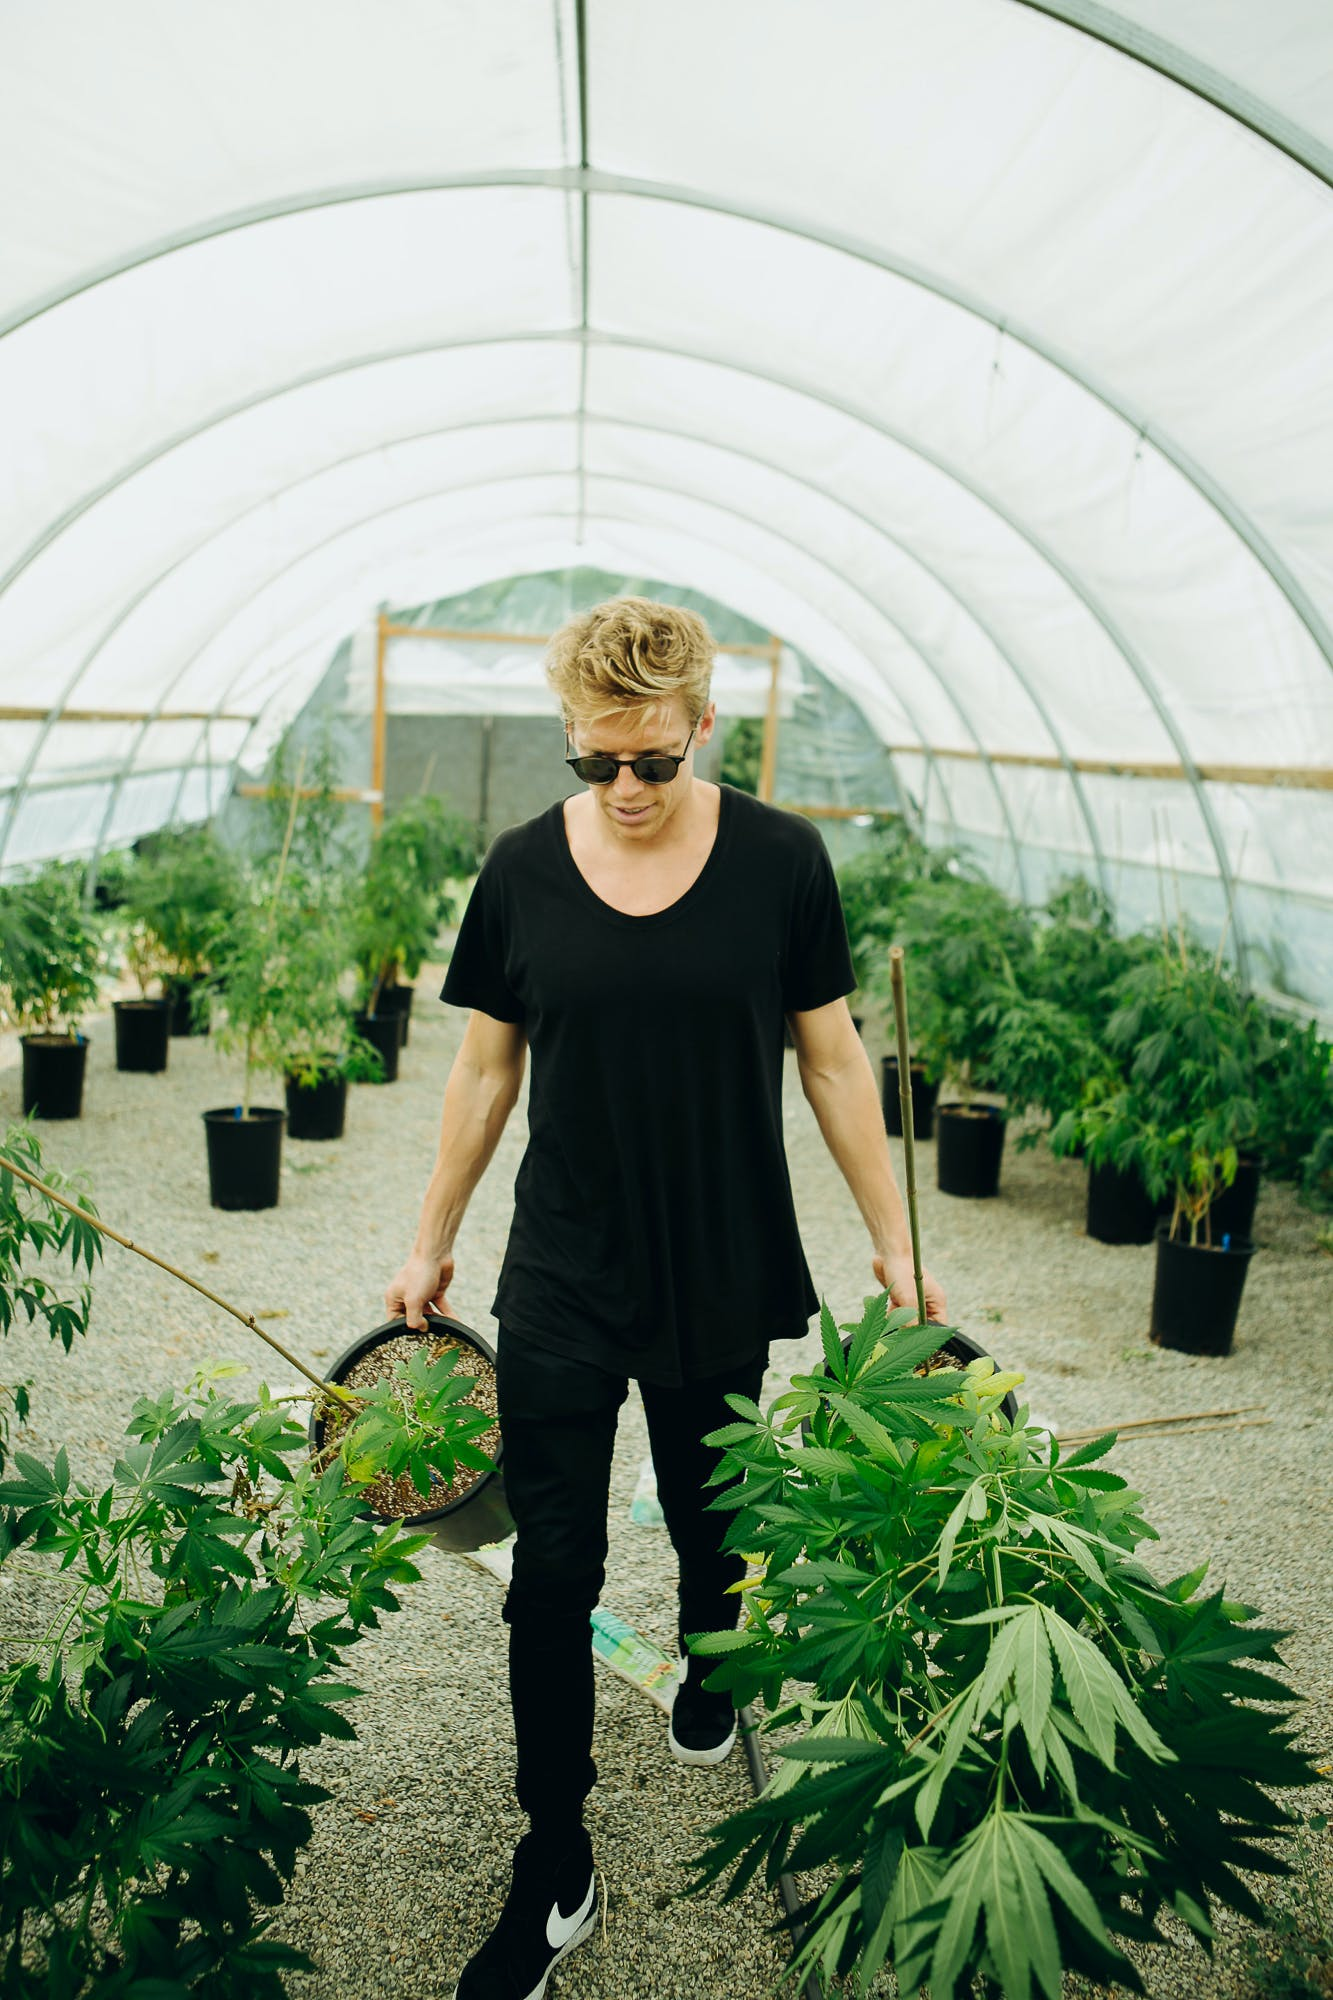 From Death%E2%80%99s Door To Thriving Business Here%E2%80%99s How Mills Miller Saved His Own Life With CBD Oil 12 Caribbean Nations Are Seriously Thinking About Cannabis Decriminalization